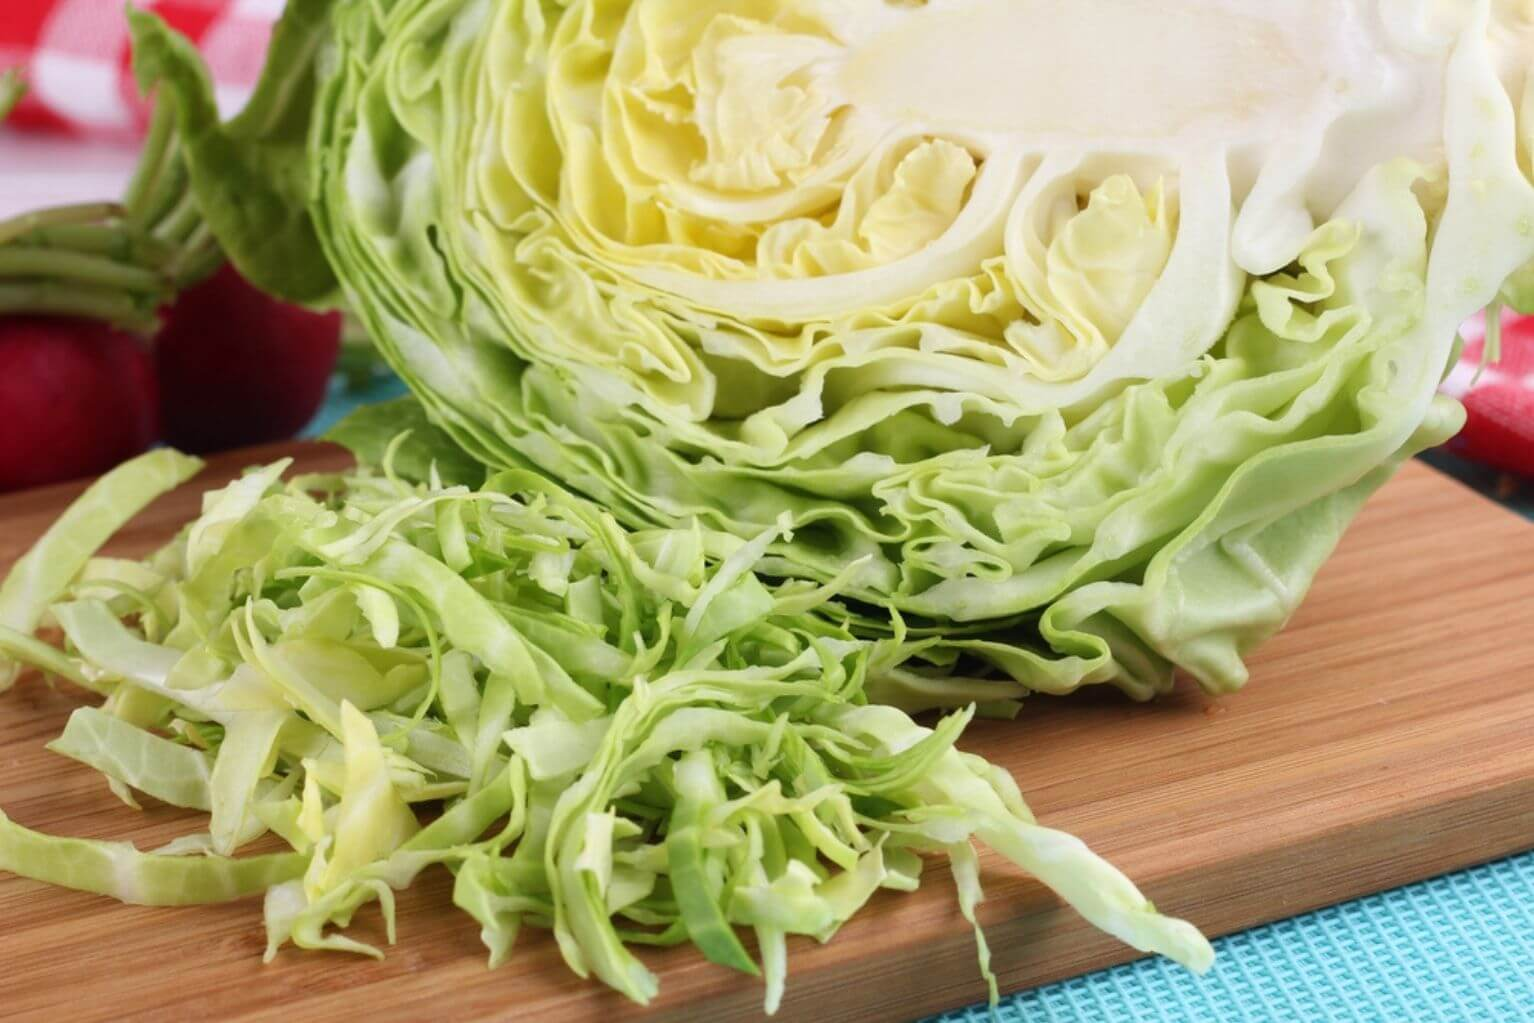 A head of cabbage on a cutting board lying next to shredded cabbage.